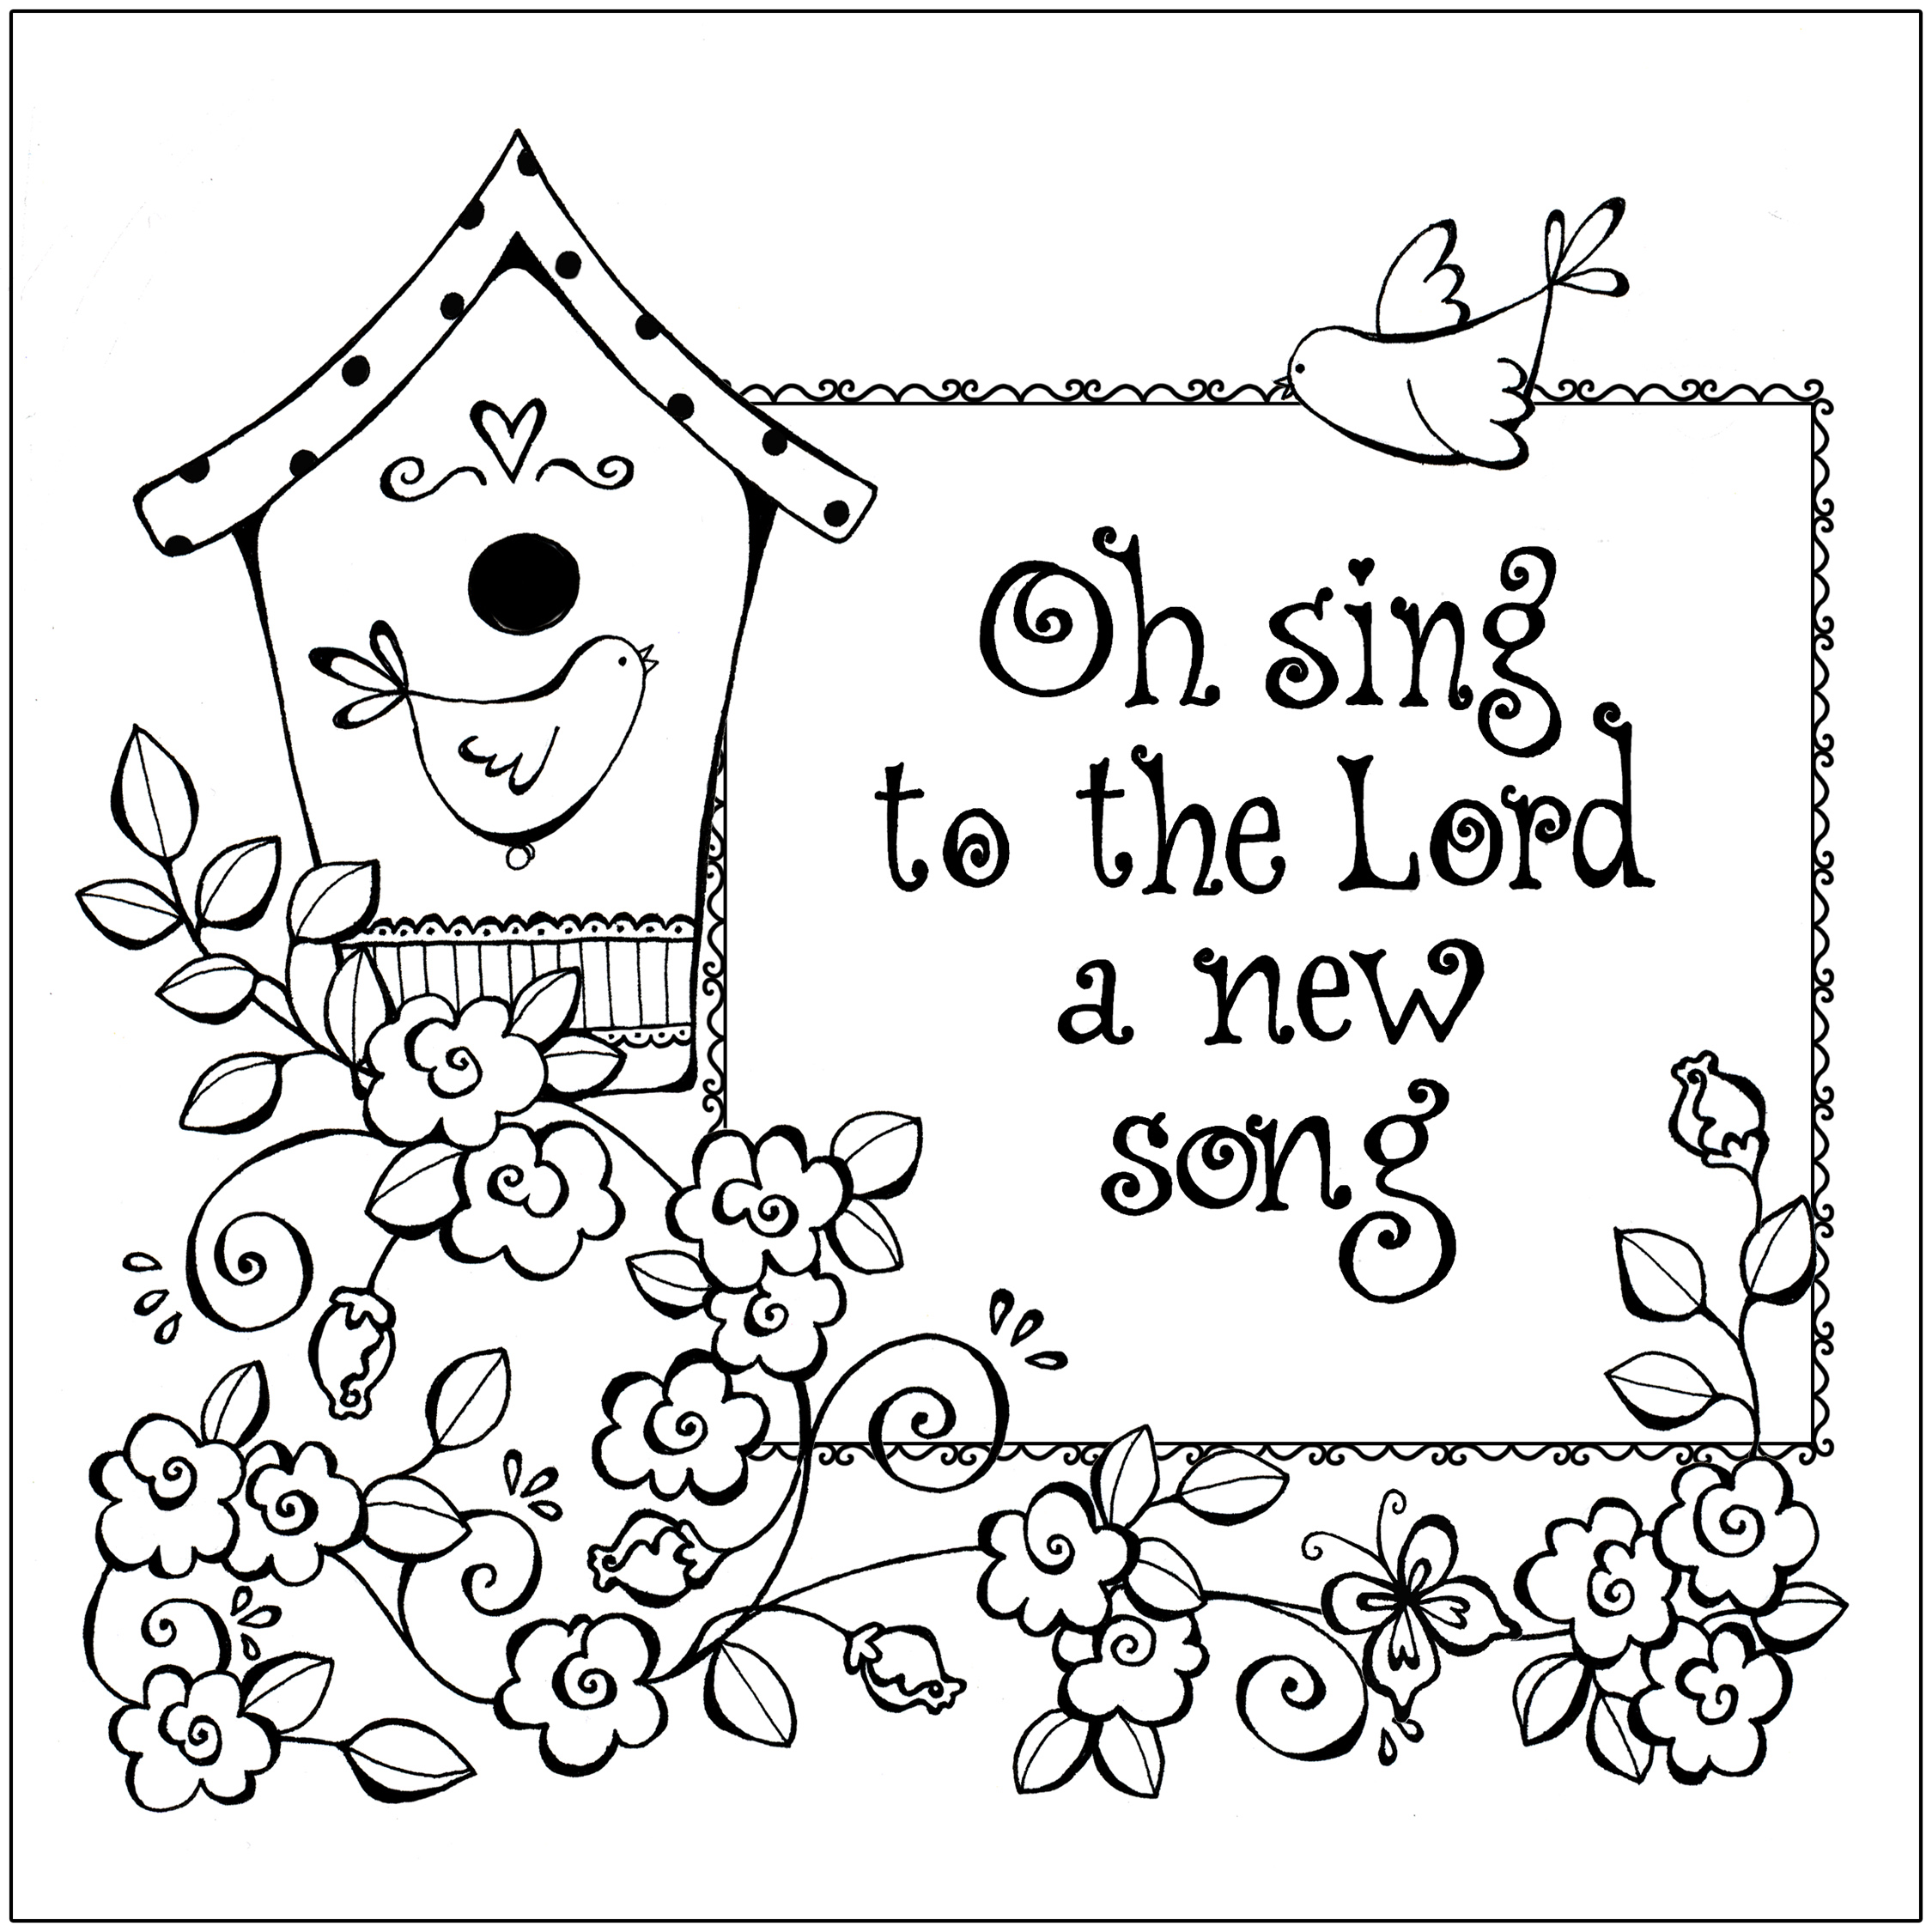 christian child coloring pages free - photo#1